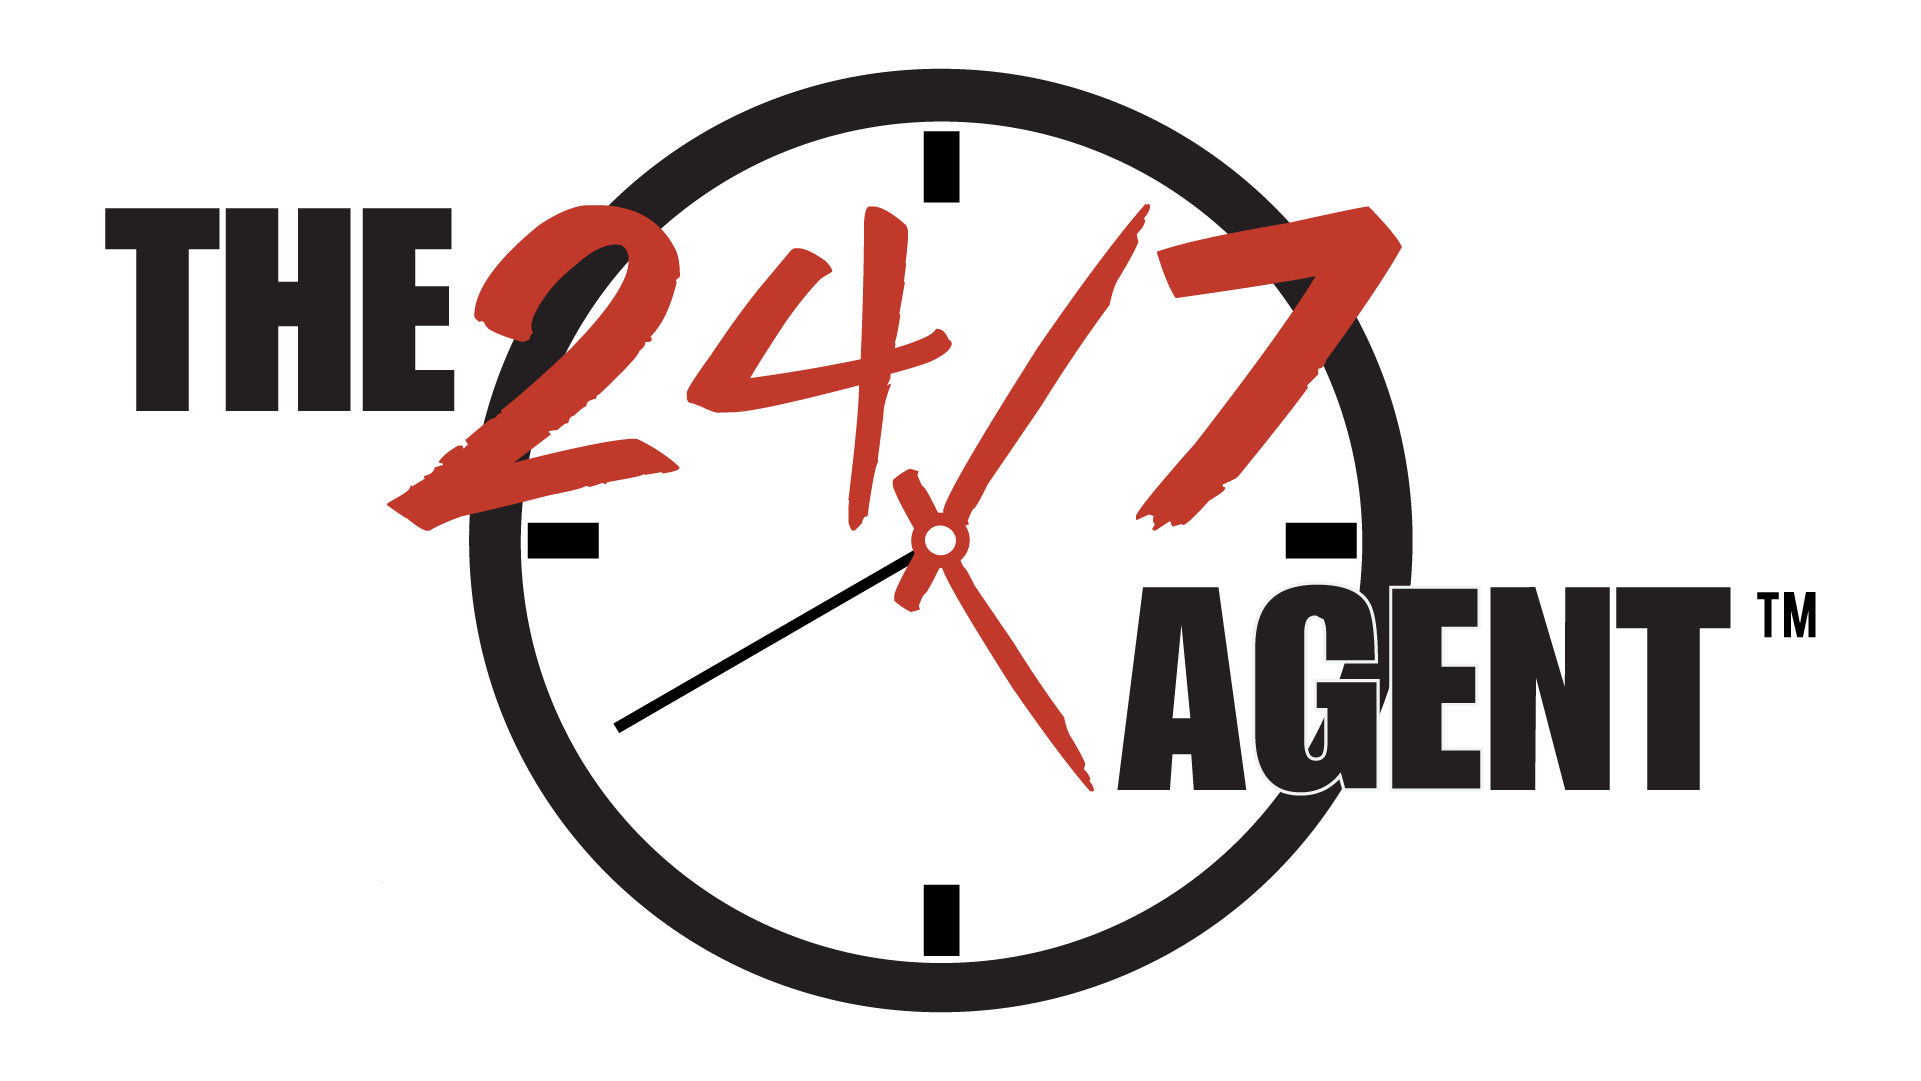 The 24/7 Agent | Stefan Doerrfeld, REALTOR, Cedar Rapids, Iowa